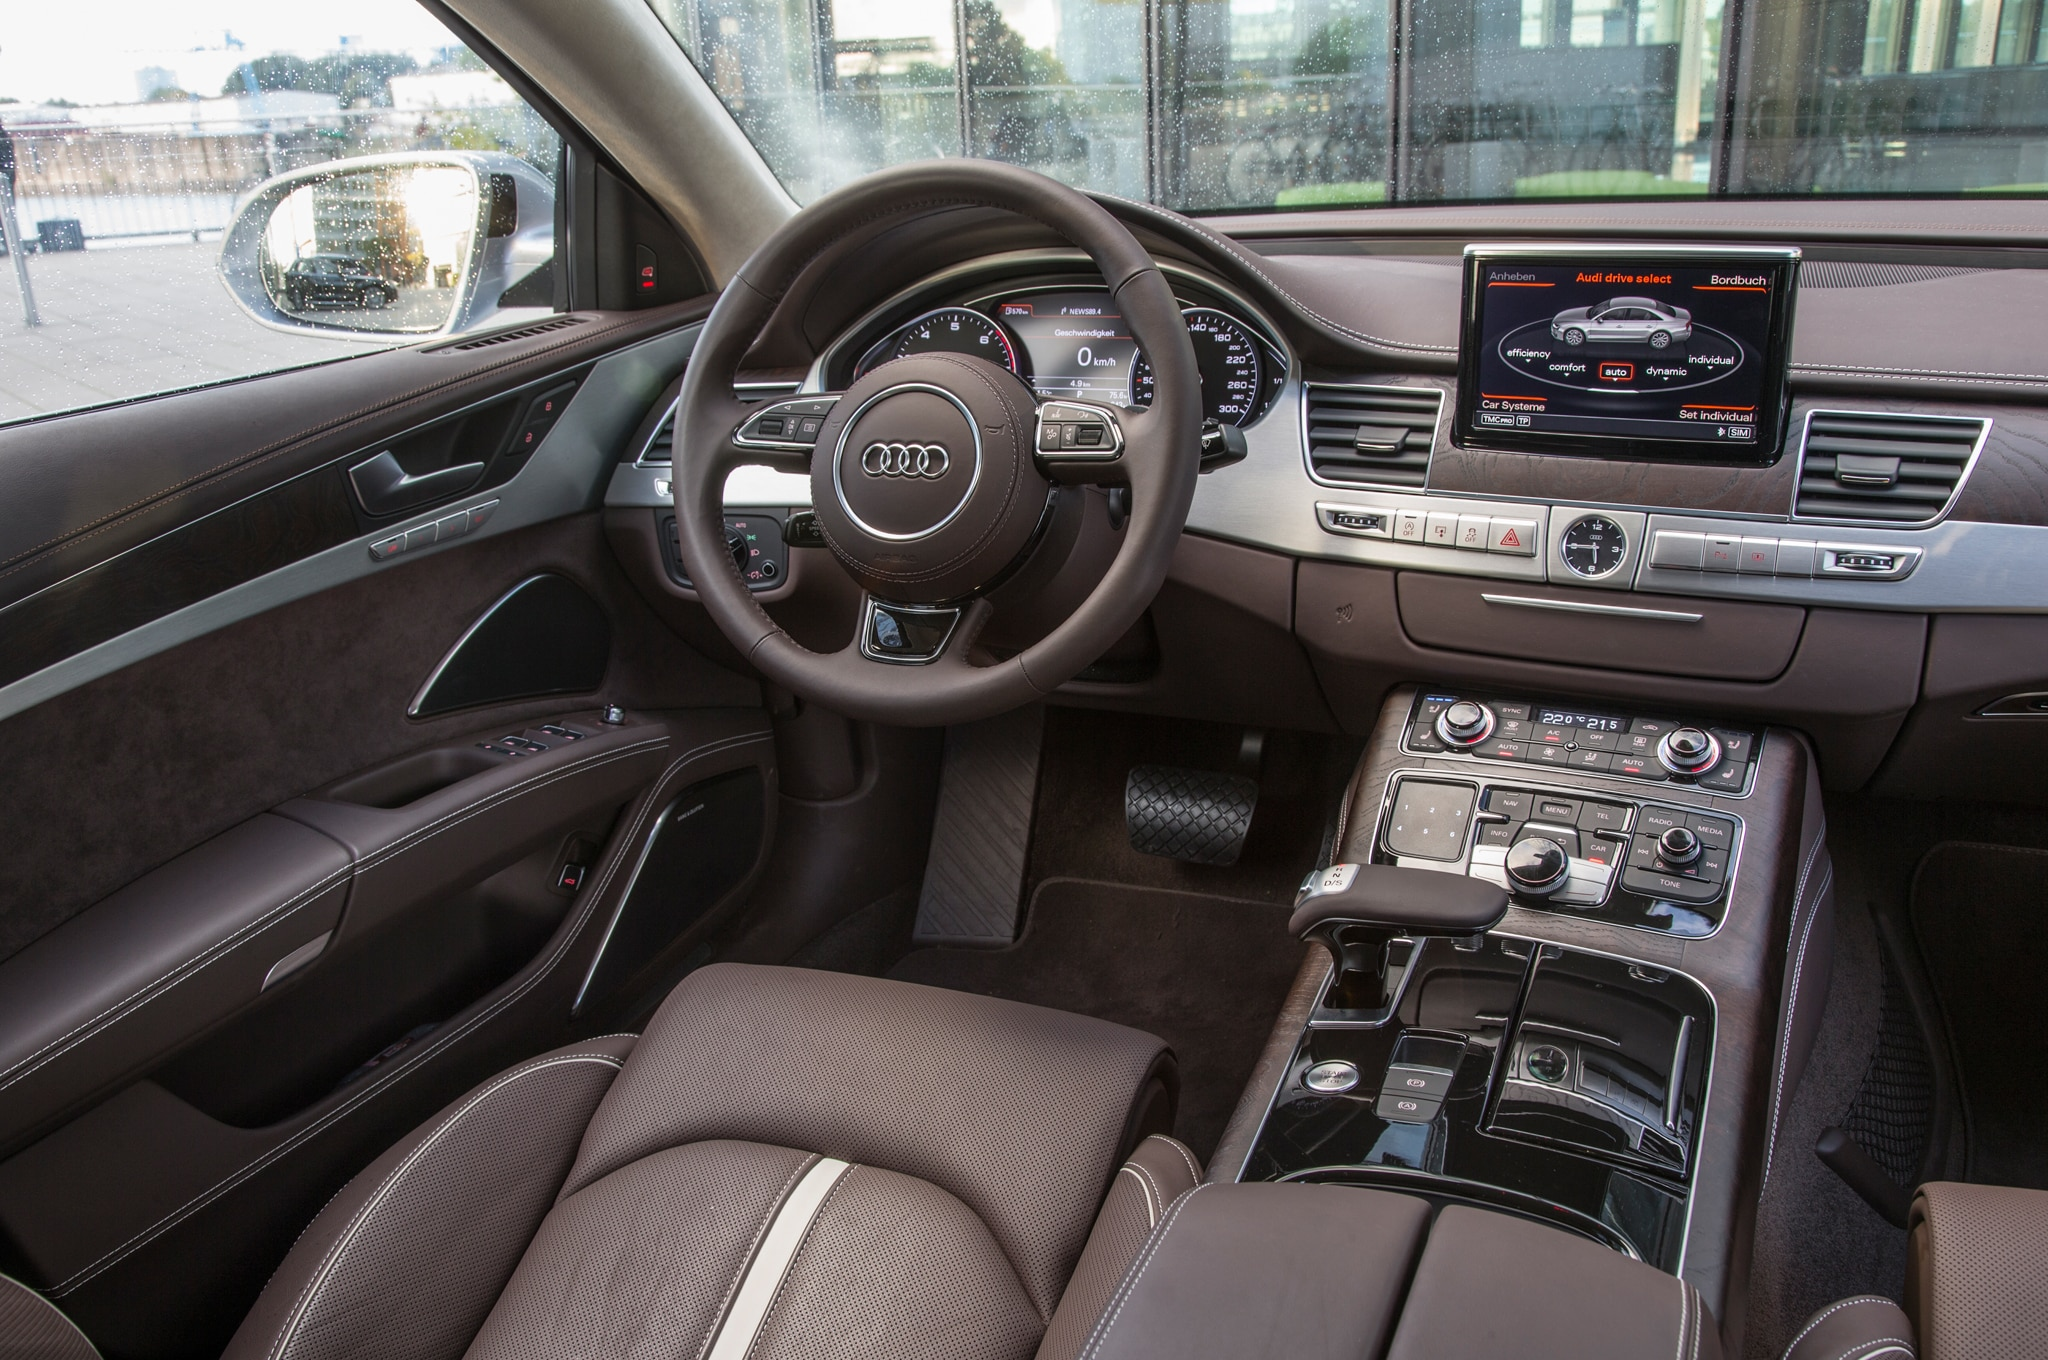 2016 audi a8 l gains 4 0t sport model with extra power visual tweaks. Black Bedroom Furniture Sets. Home Design Ideas